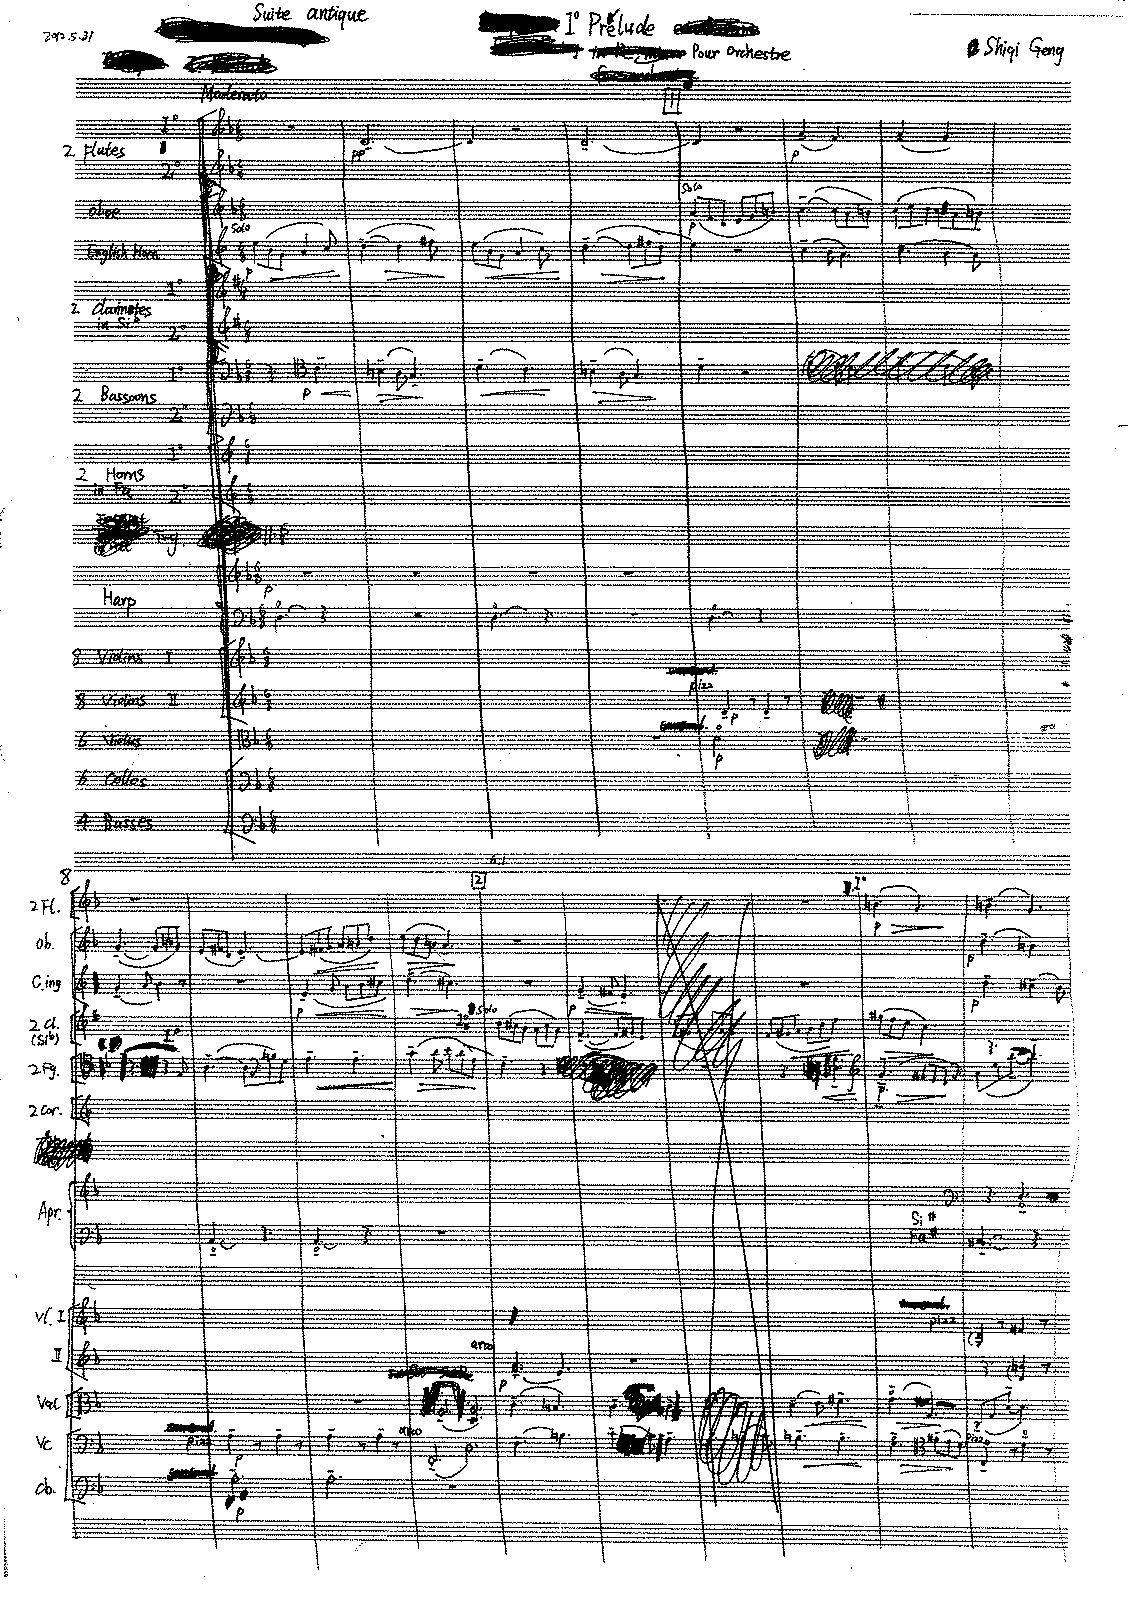 PMLP393224-suite antique orchestre.pdf